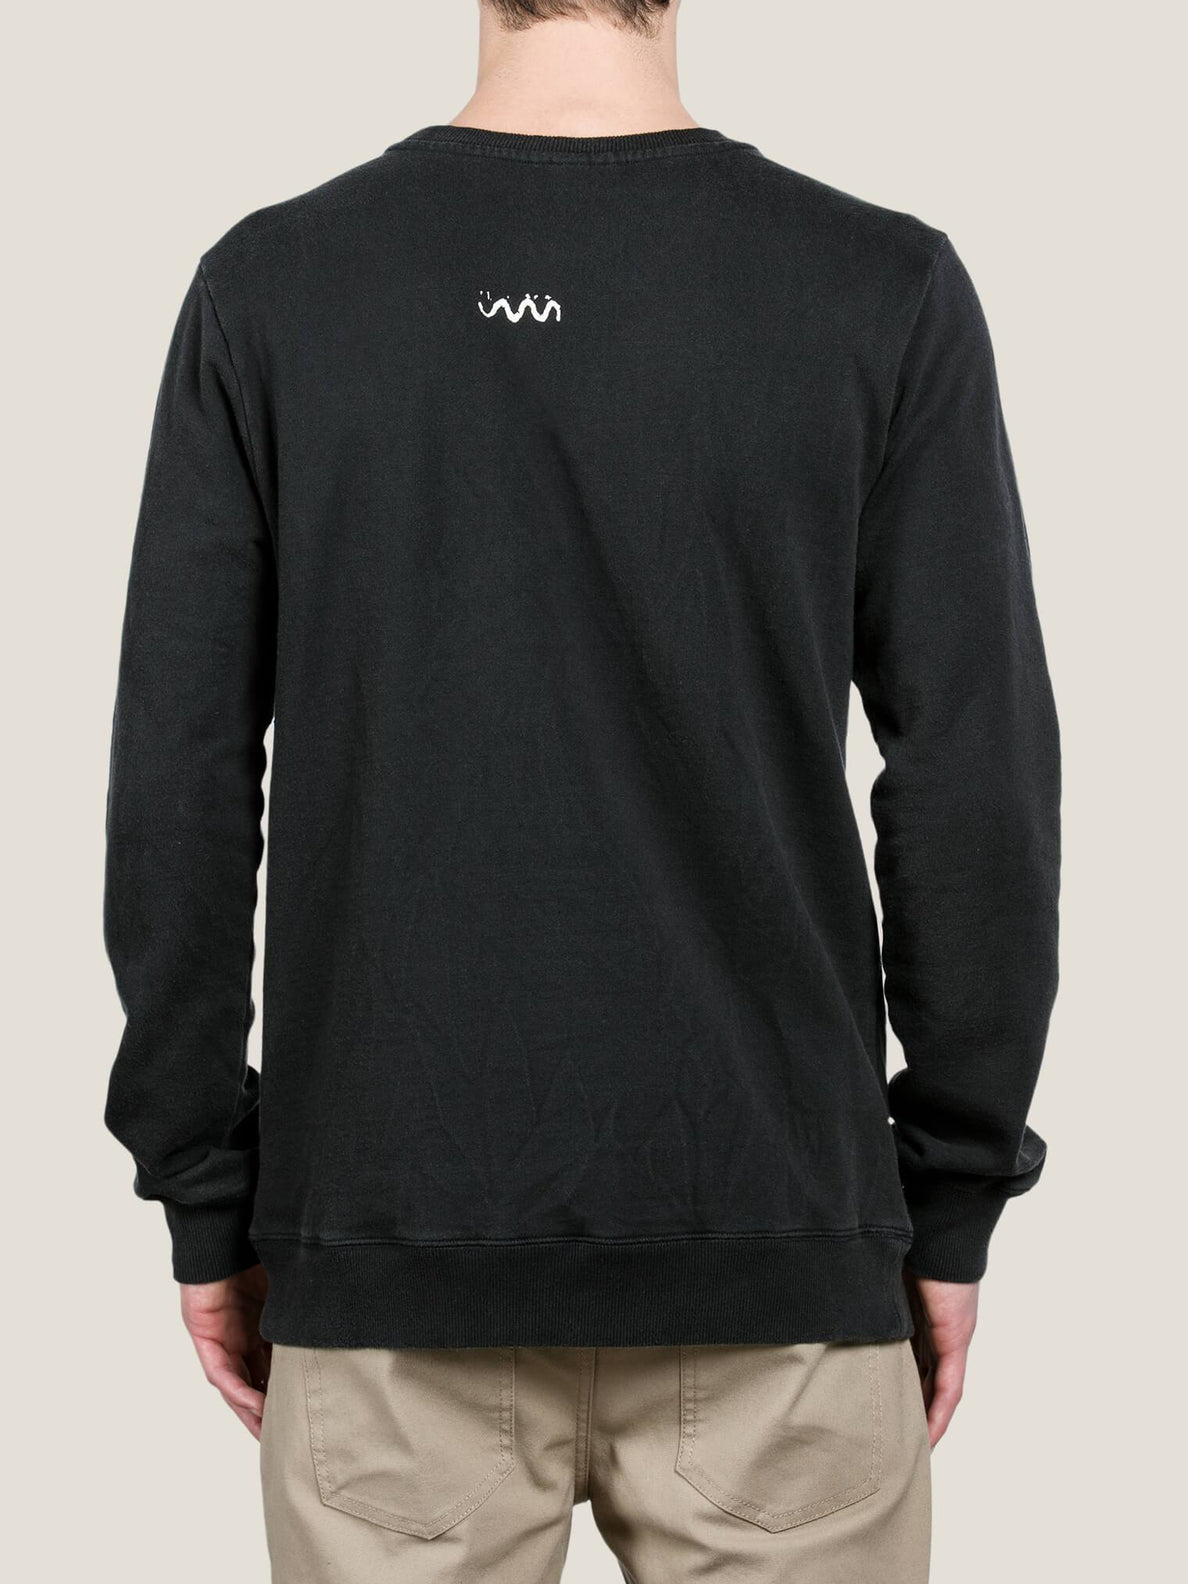 Reload Crew Sweatshirt - Washed Black